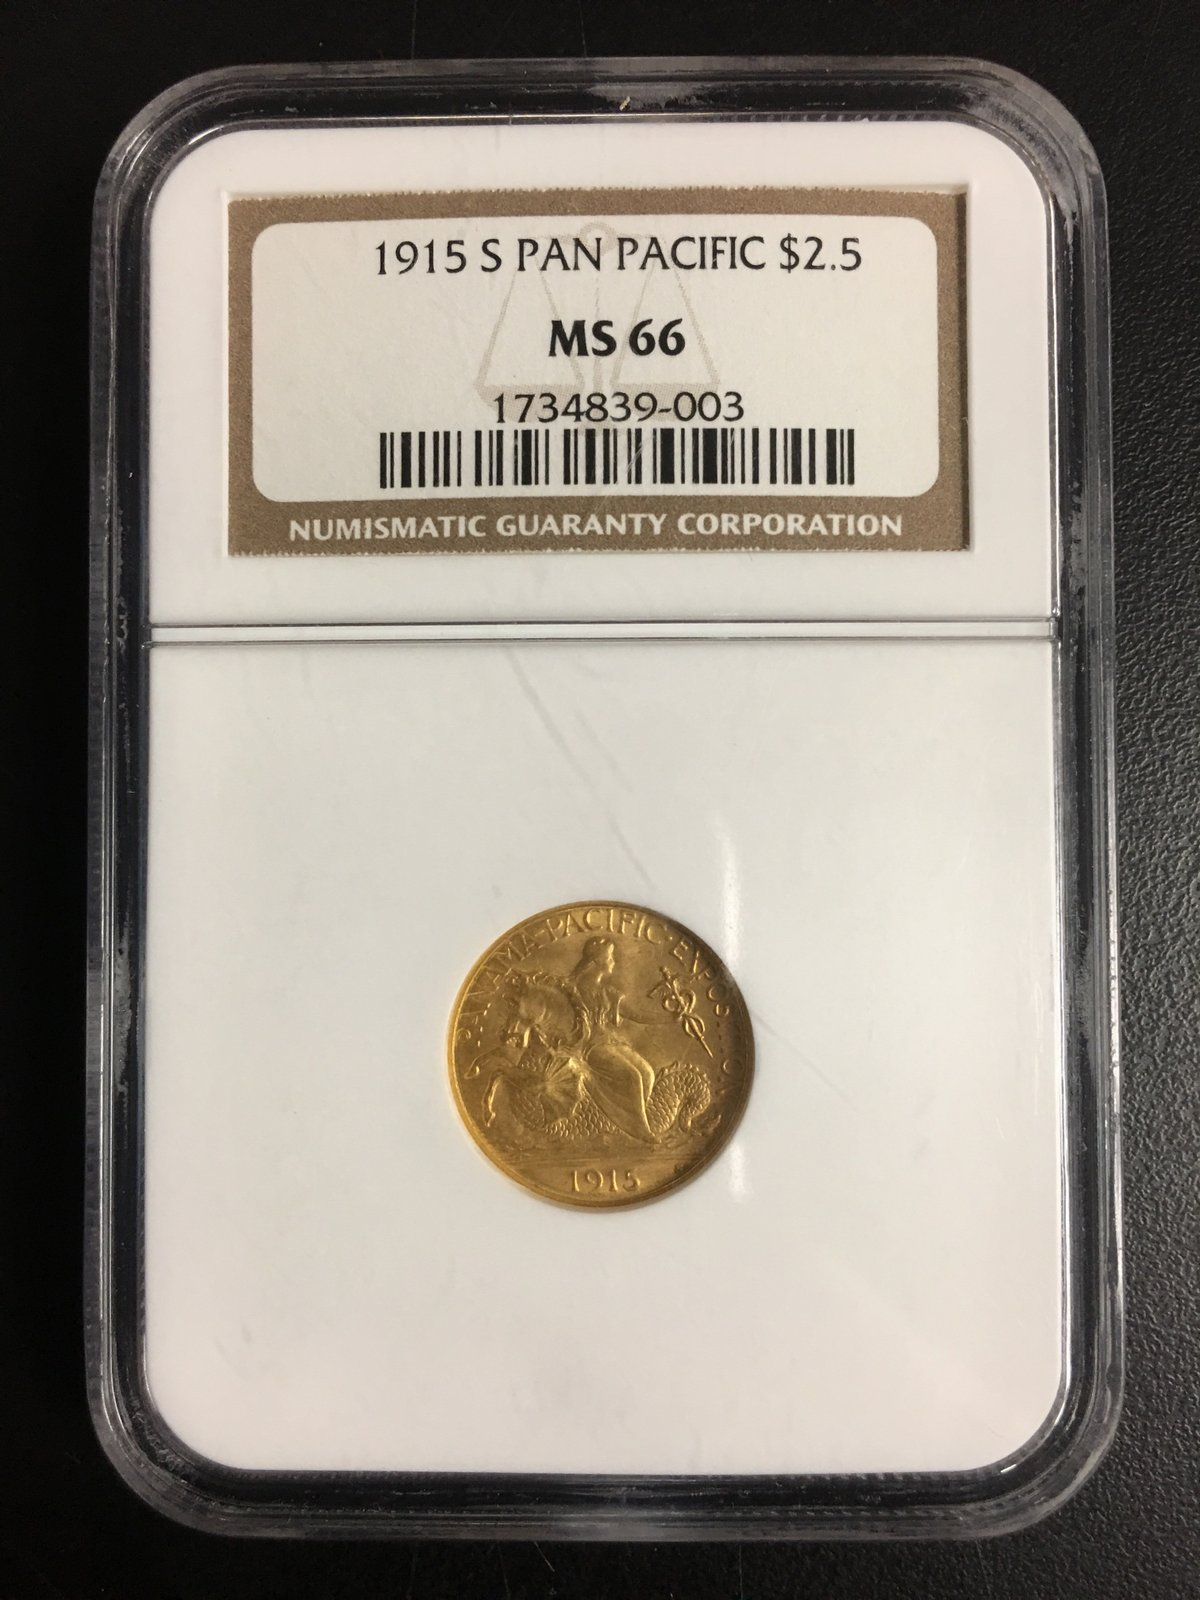 $2.50 Pan Pacific Gold Coin - 1915 S - NGC Grade MS66